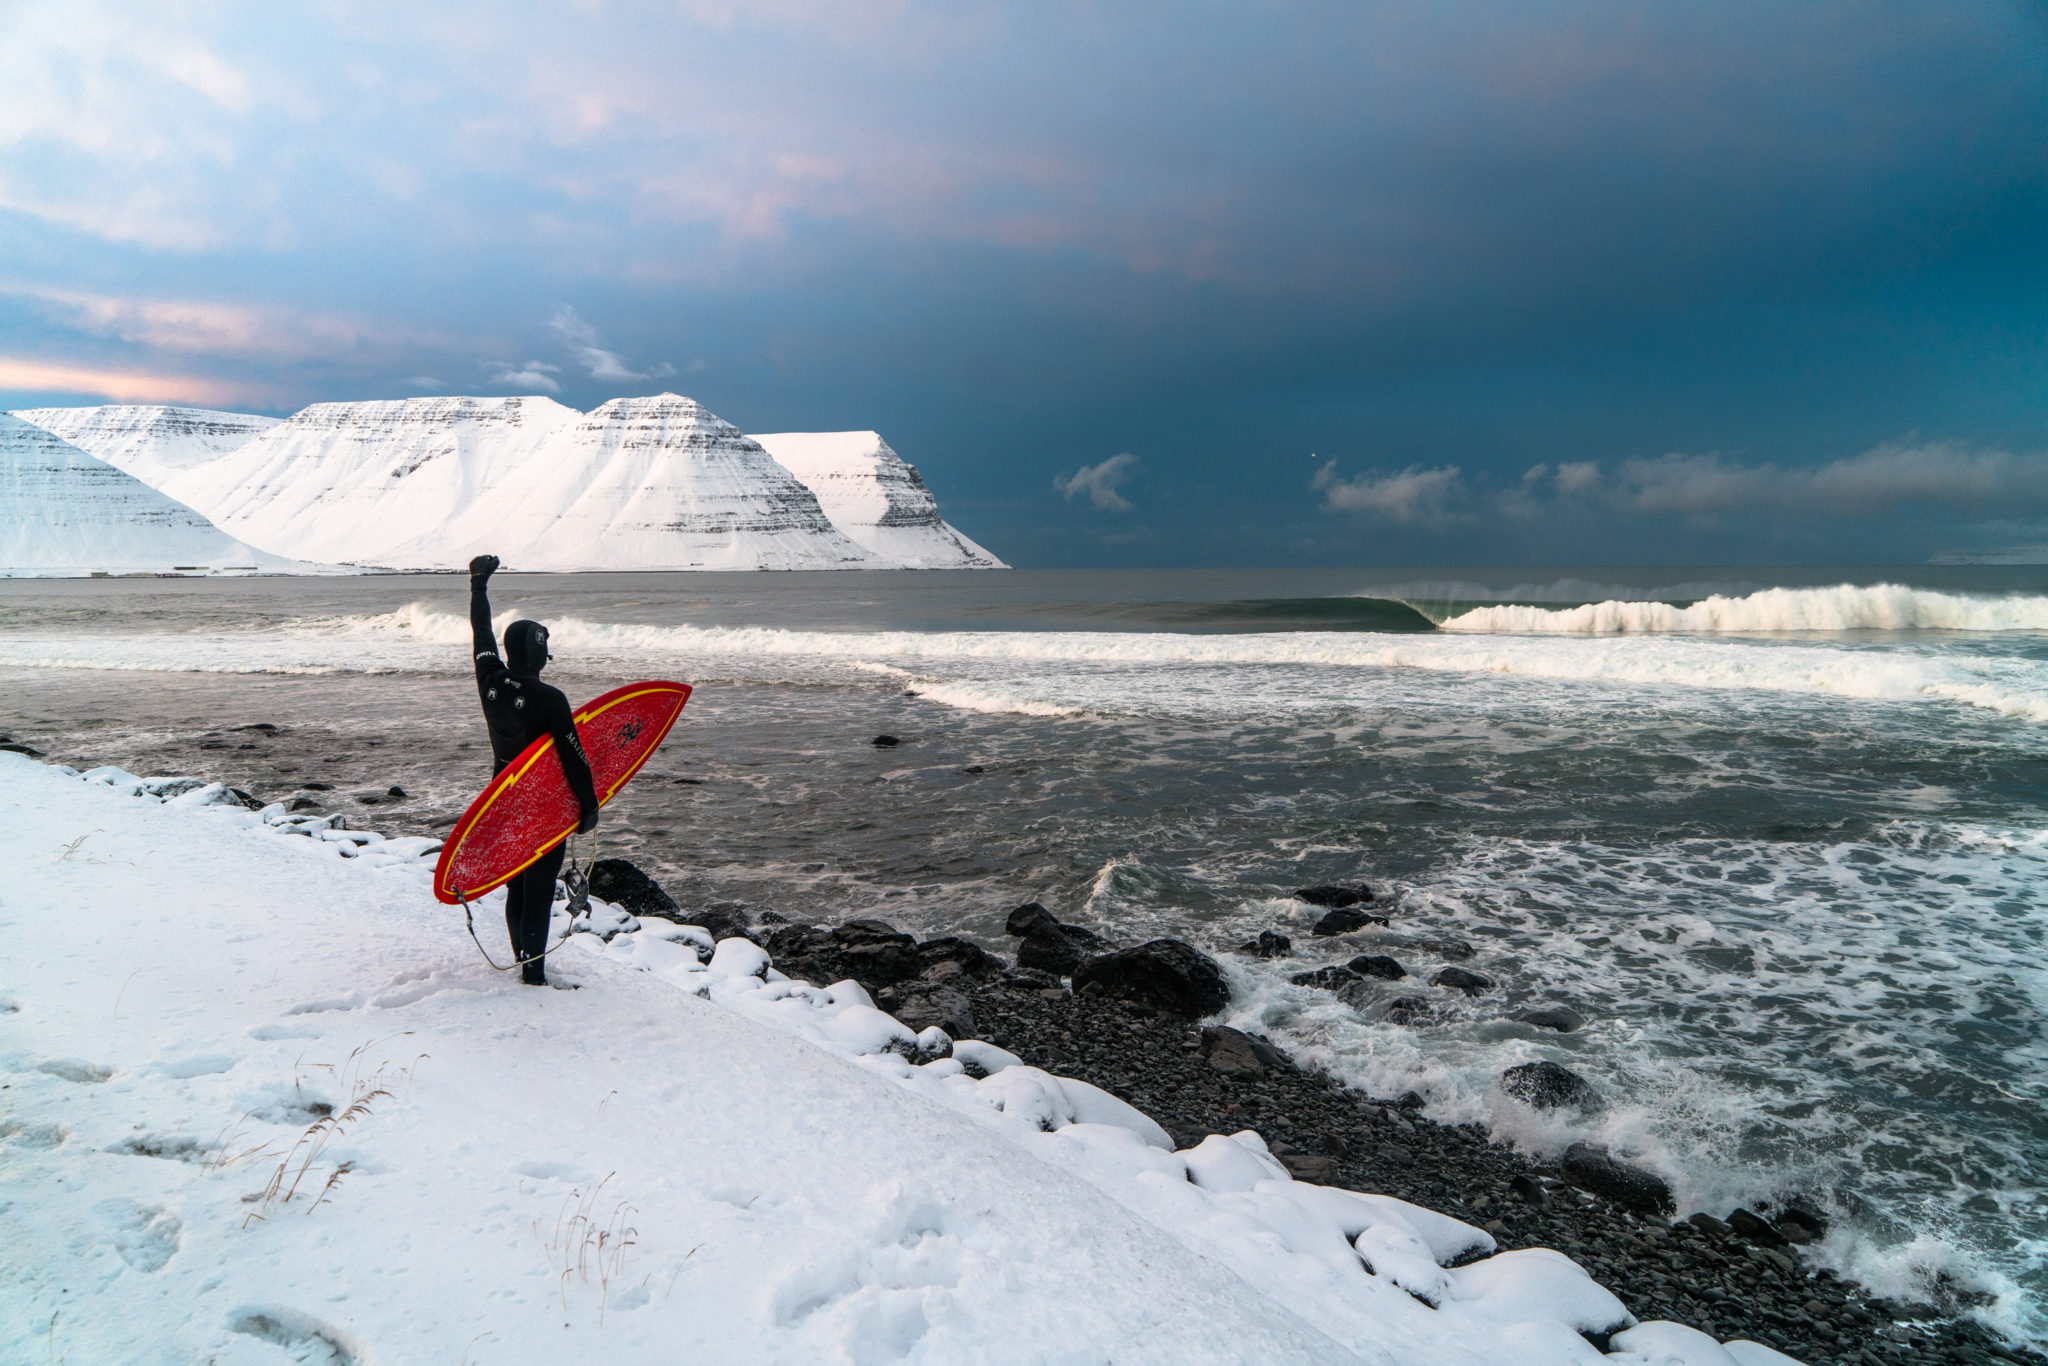 Chris-Burkard-Interview-Surfing-Iceland